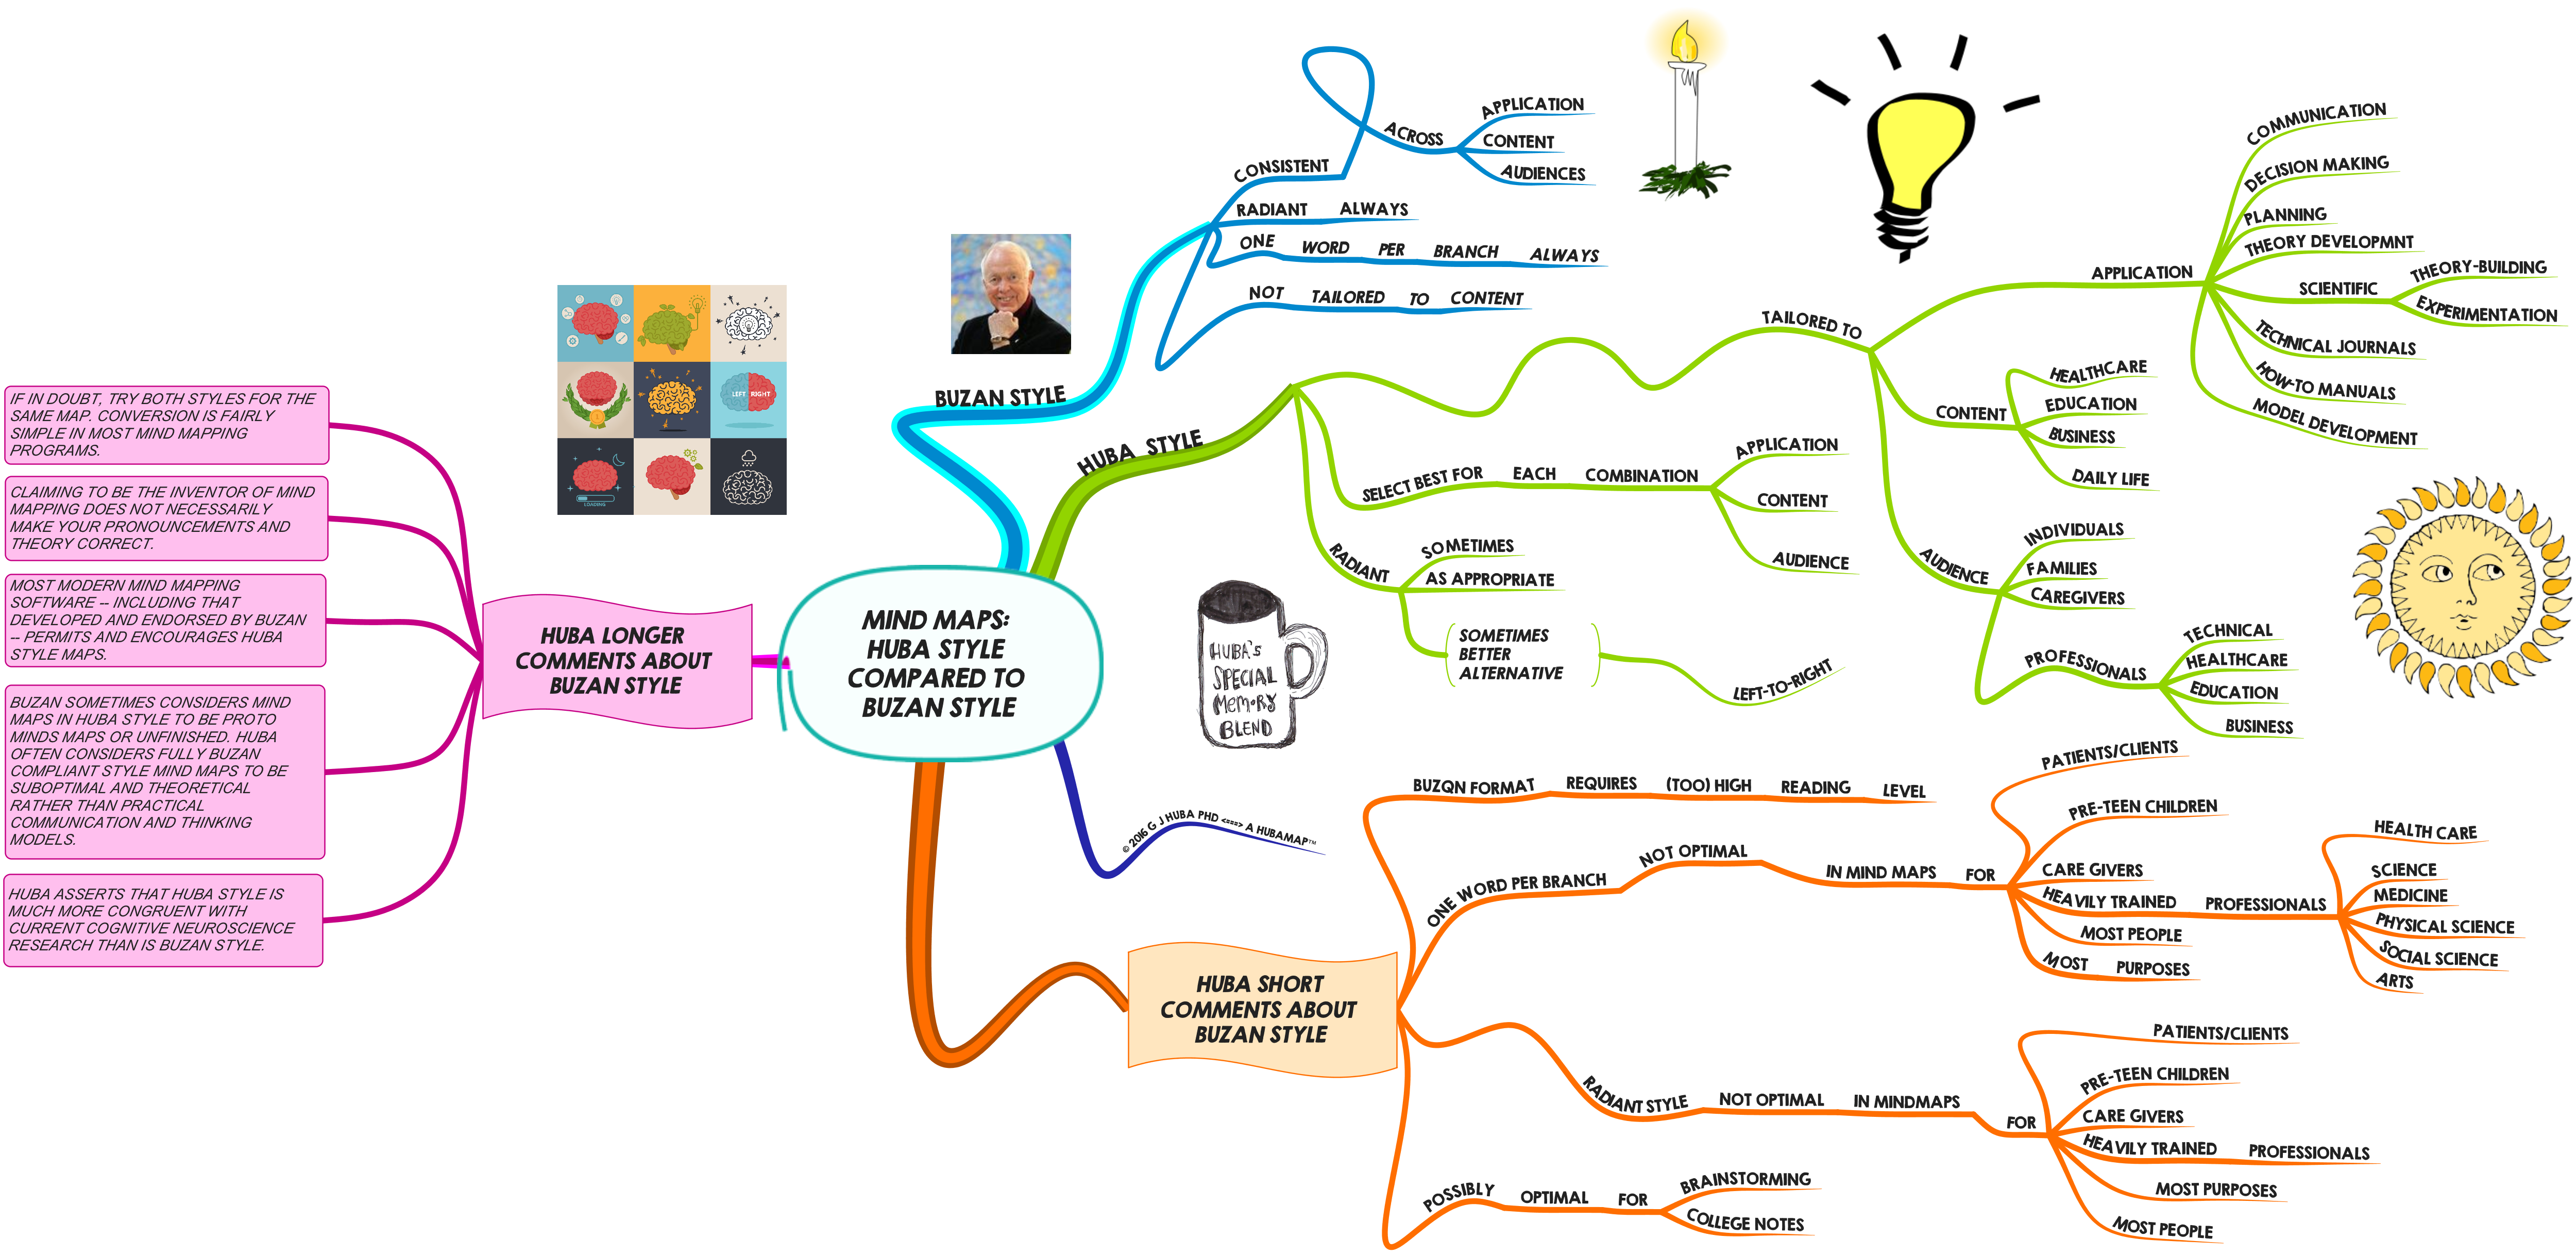 MIND MAPS HUBA STYLE COMPARED TO BUZAN STYLE